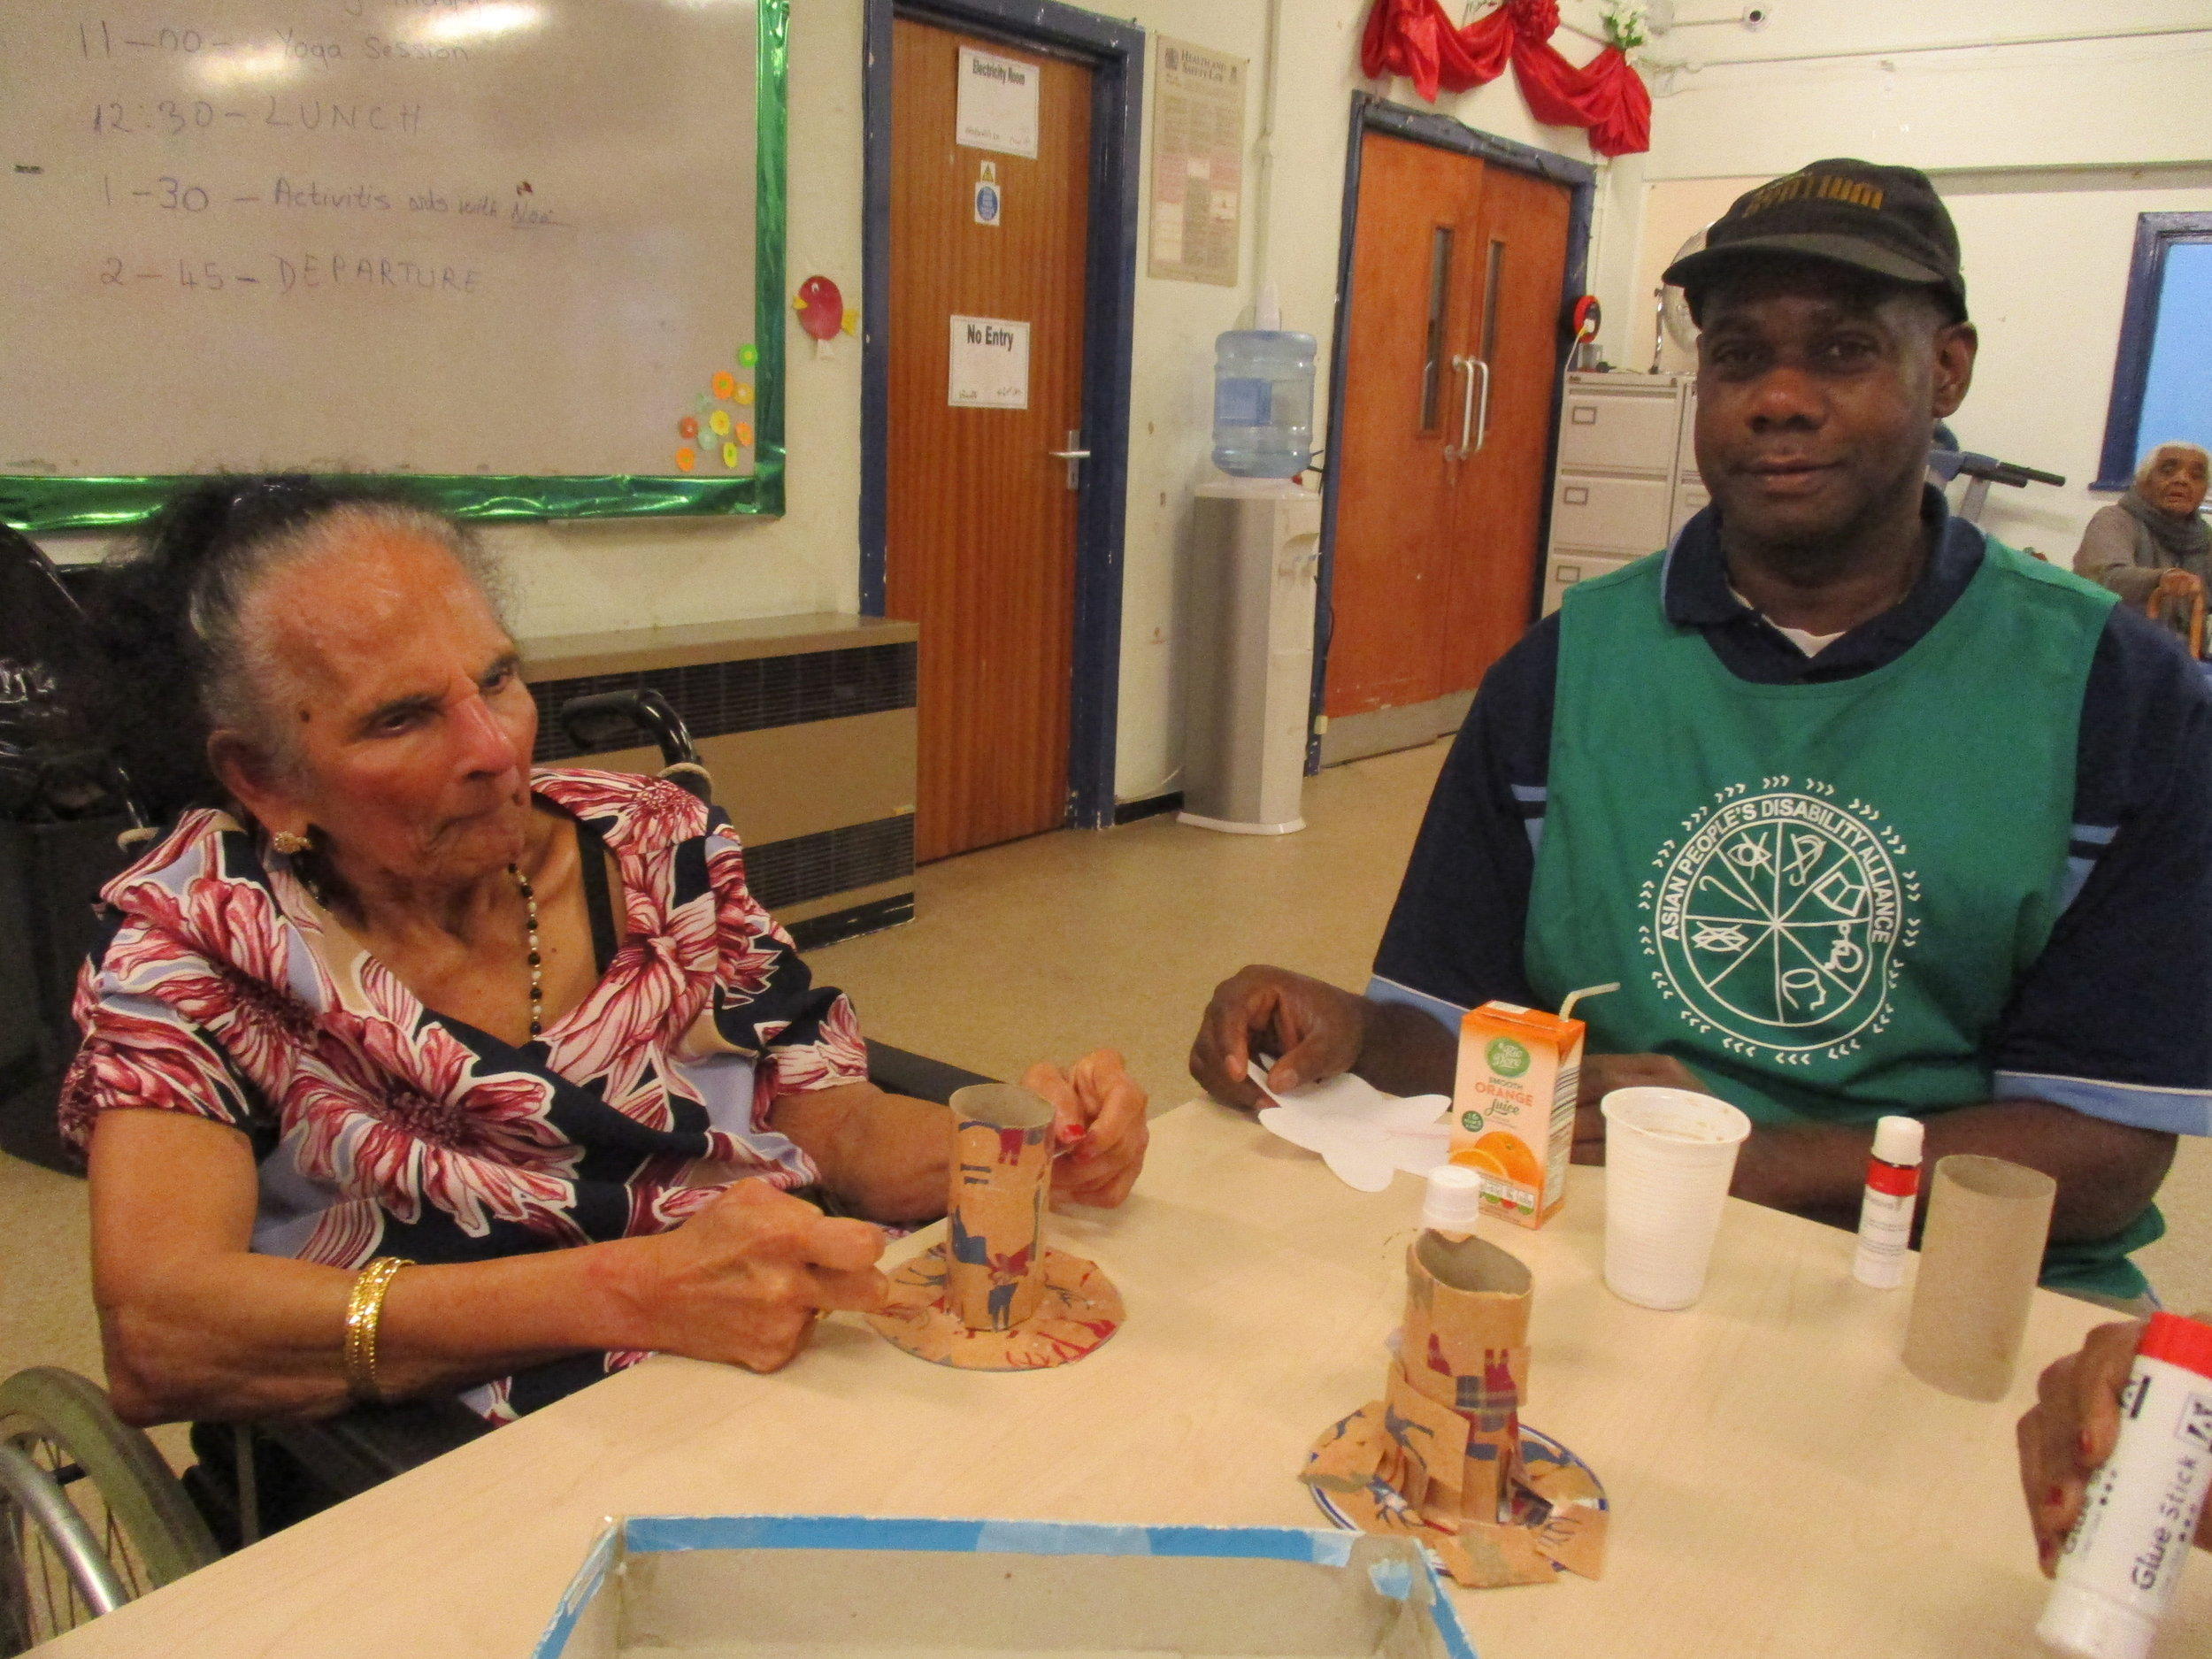 Service Users crafting with recycled materials